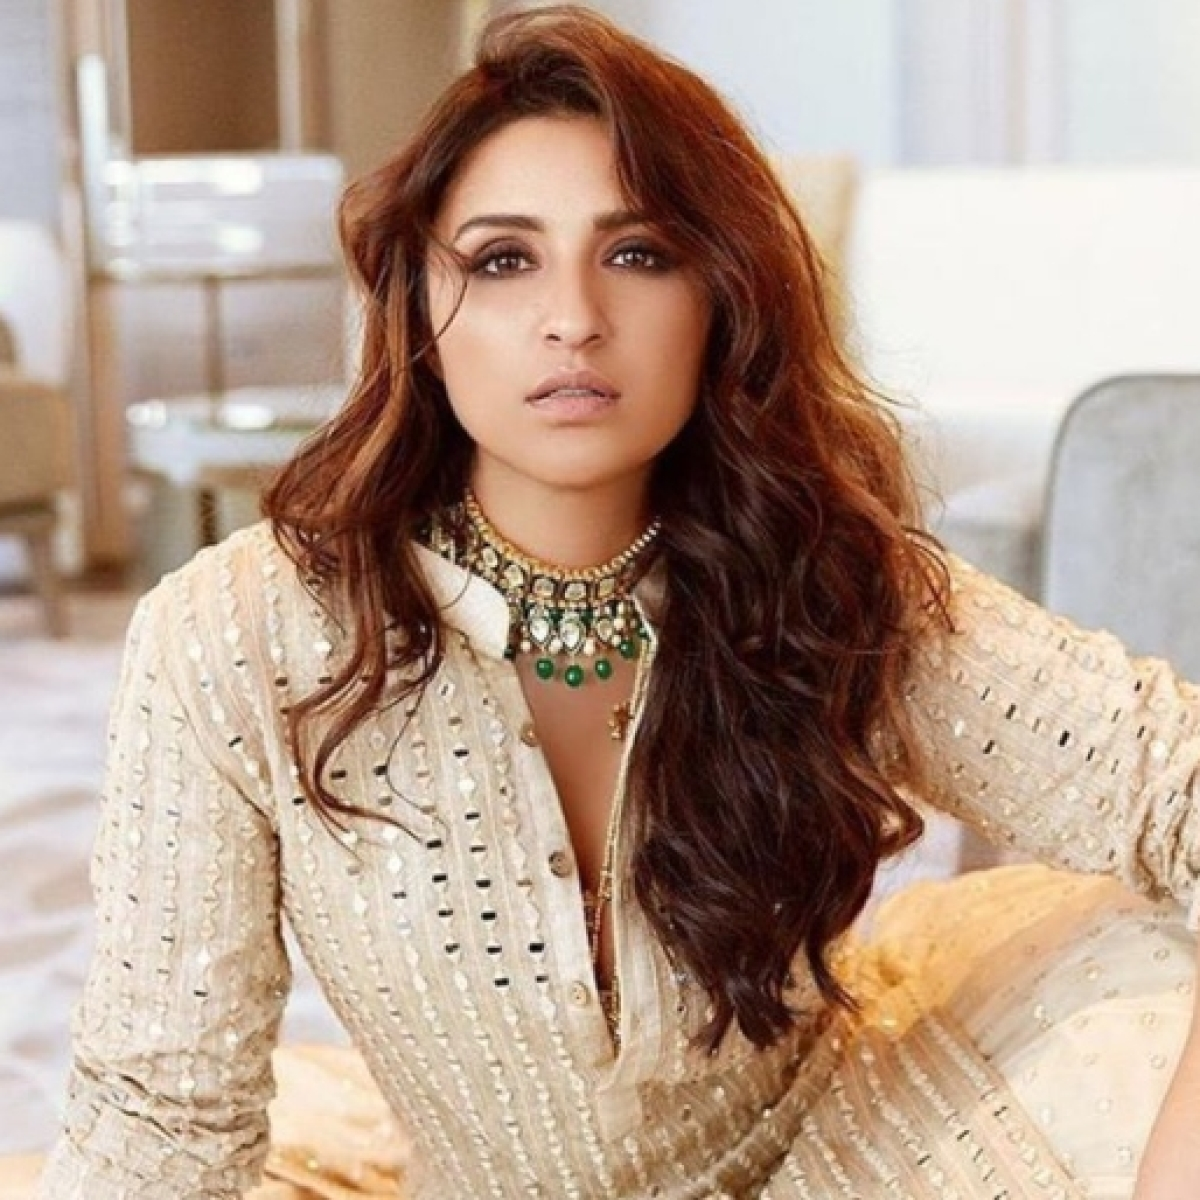 Parineeti Chopra is 'ready as a bride' but her husband is 'pending'